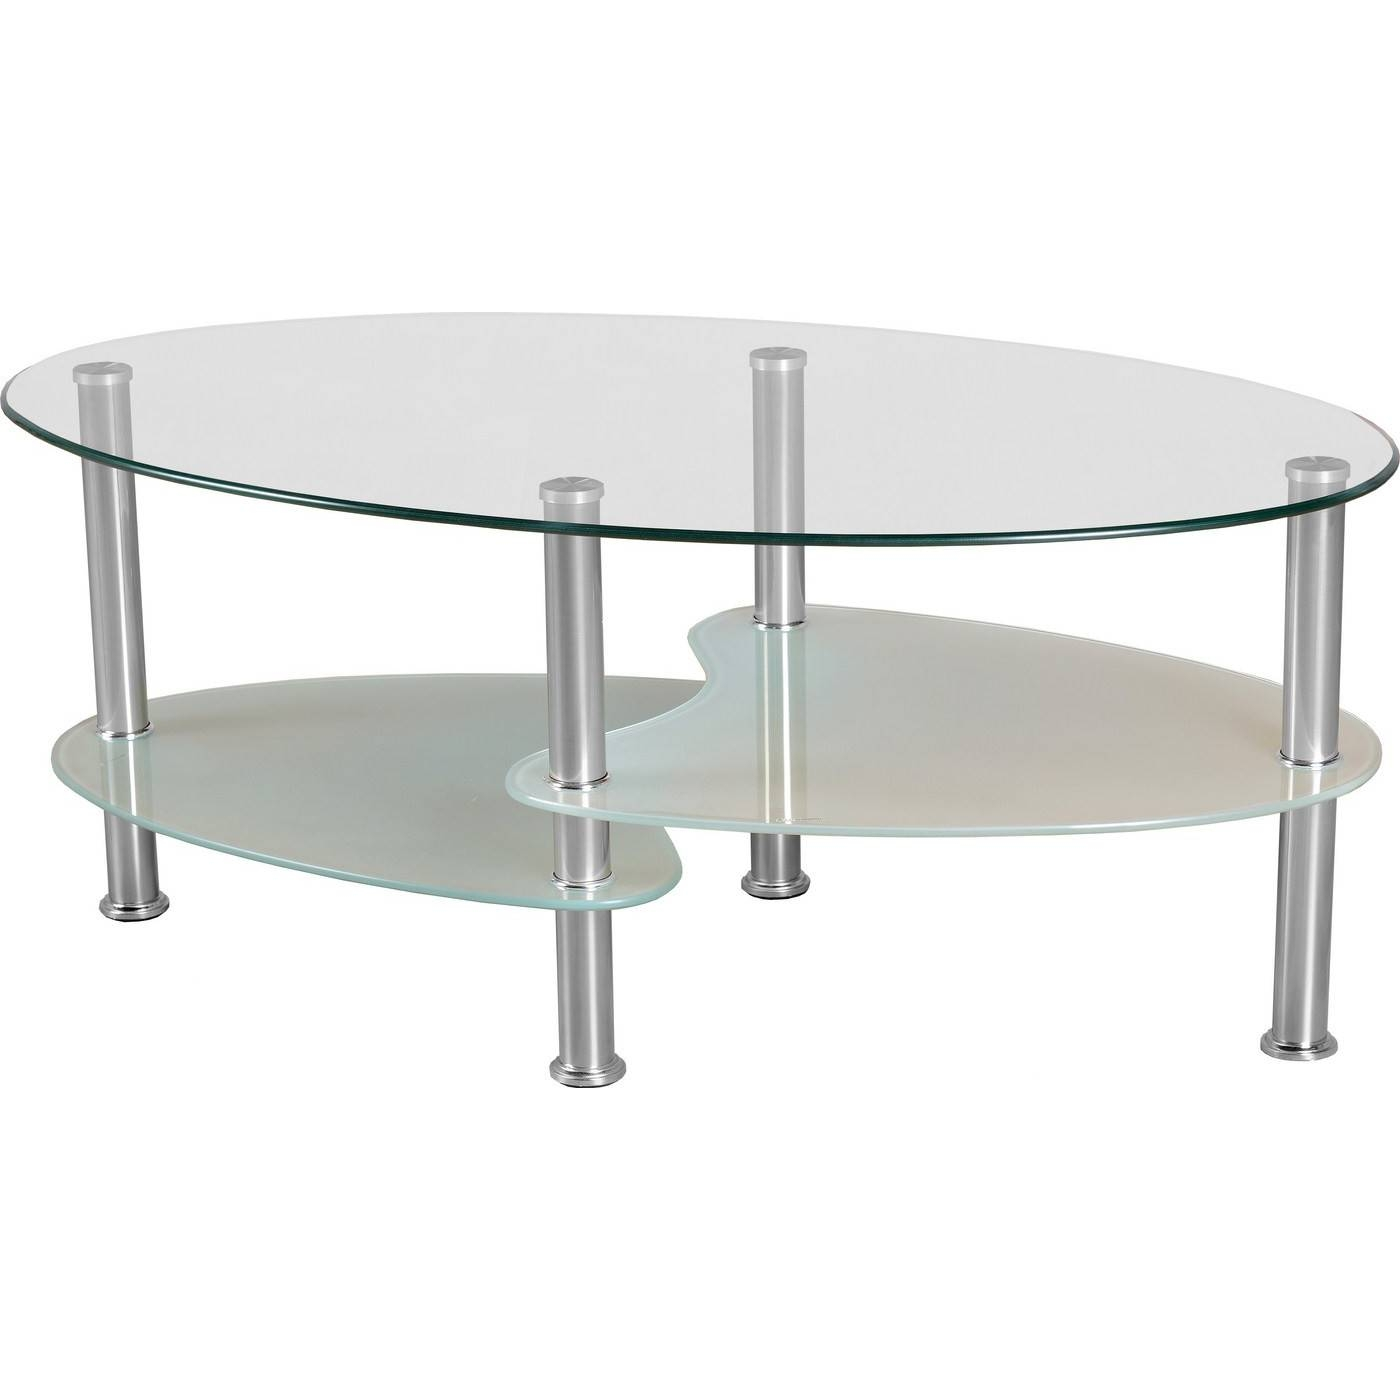 Oval Glass Coffee Table Modern Coffee Tables Oval Glass And Wood Inside Oval Glass Coffee Tables (View 2 of 30)